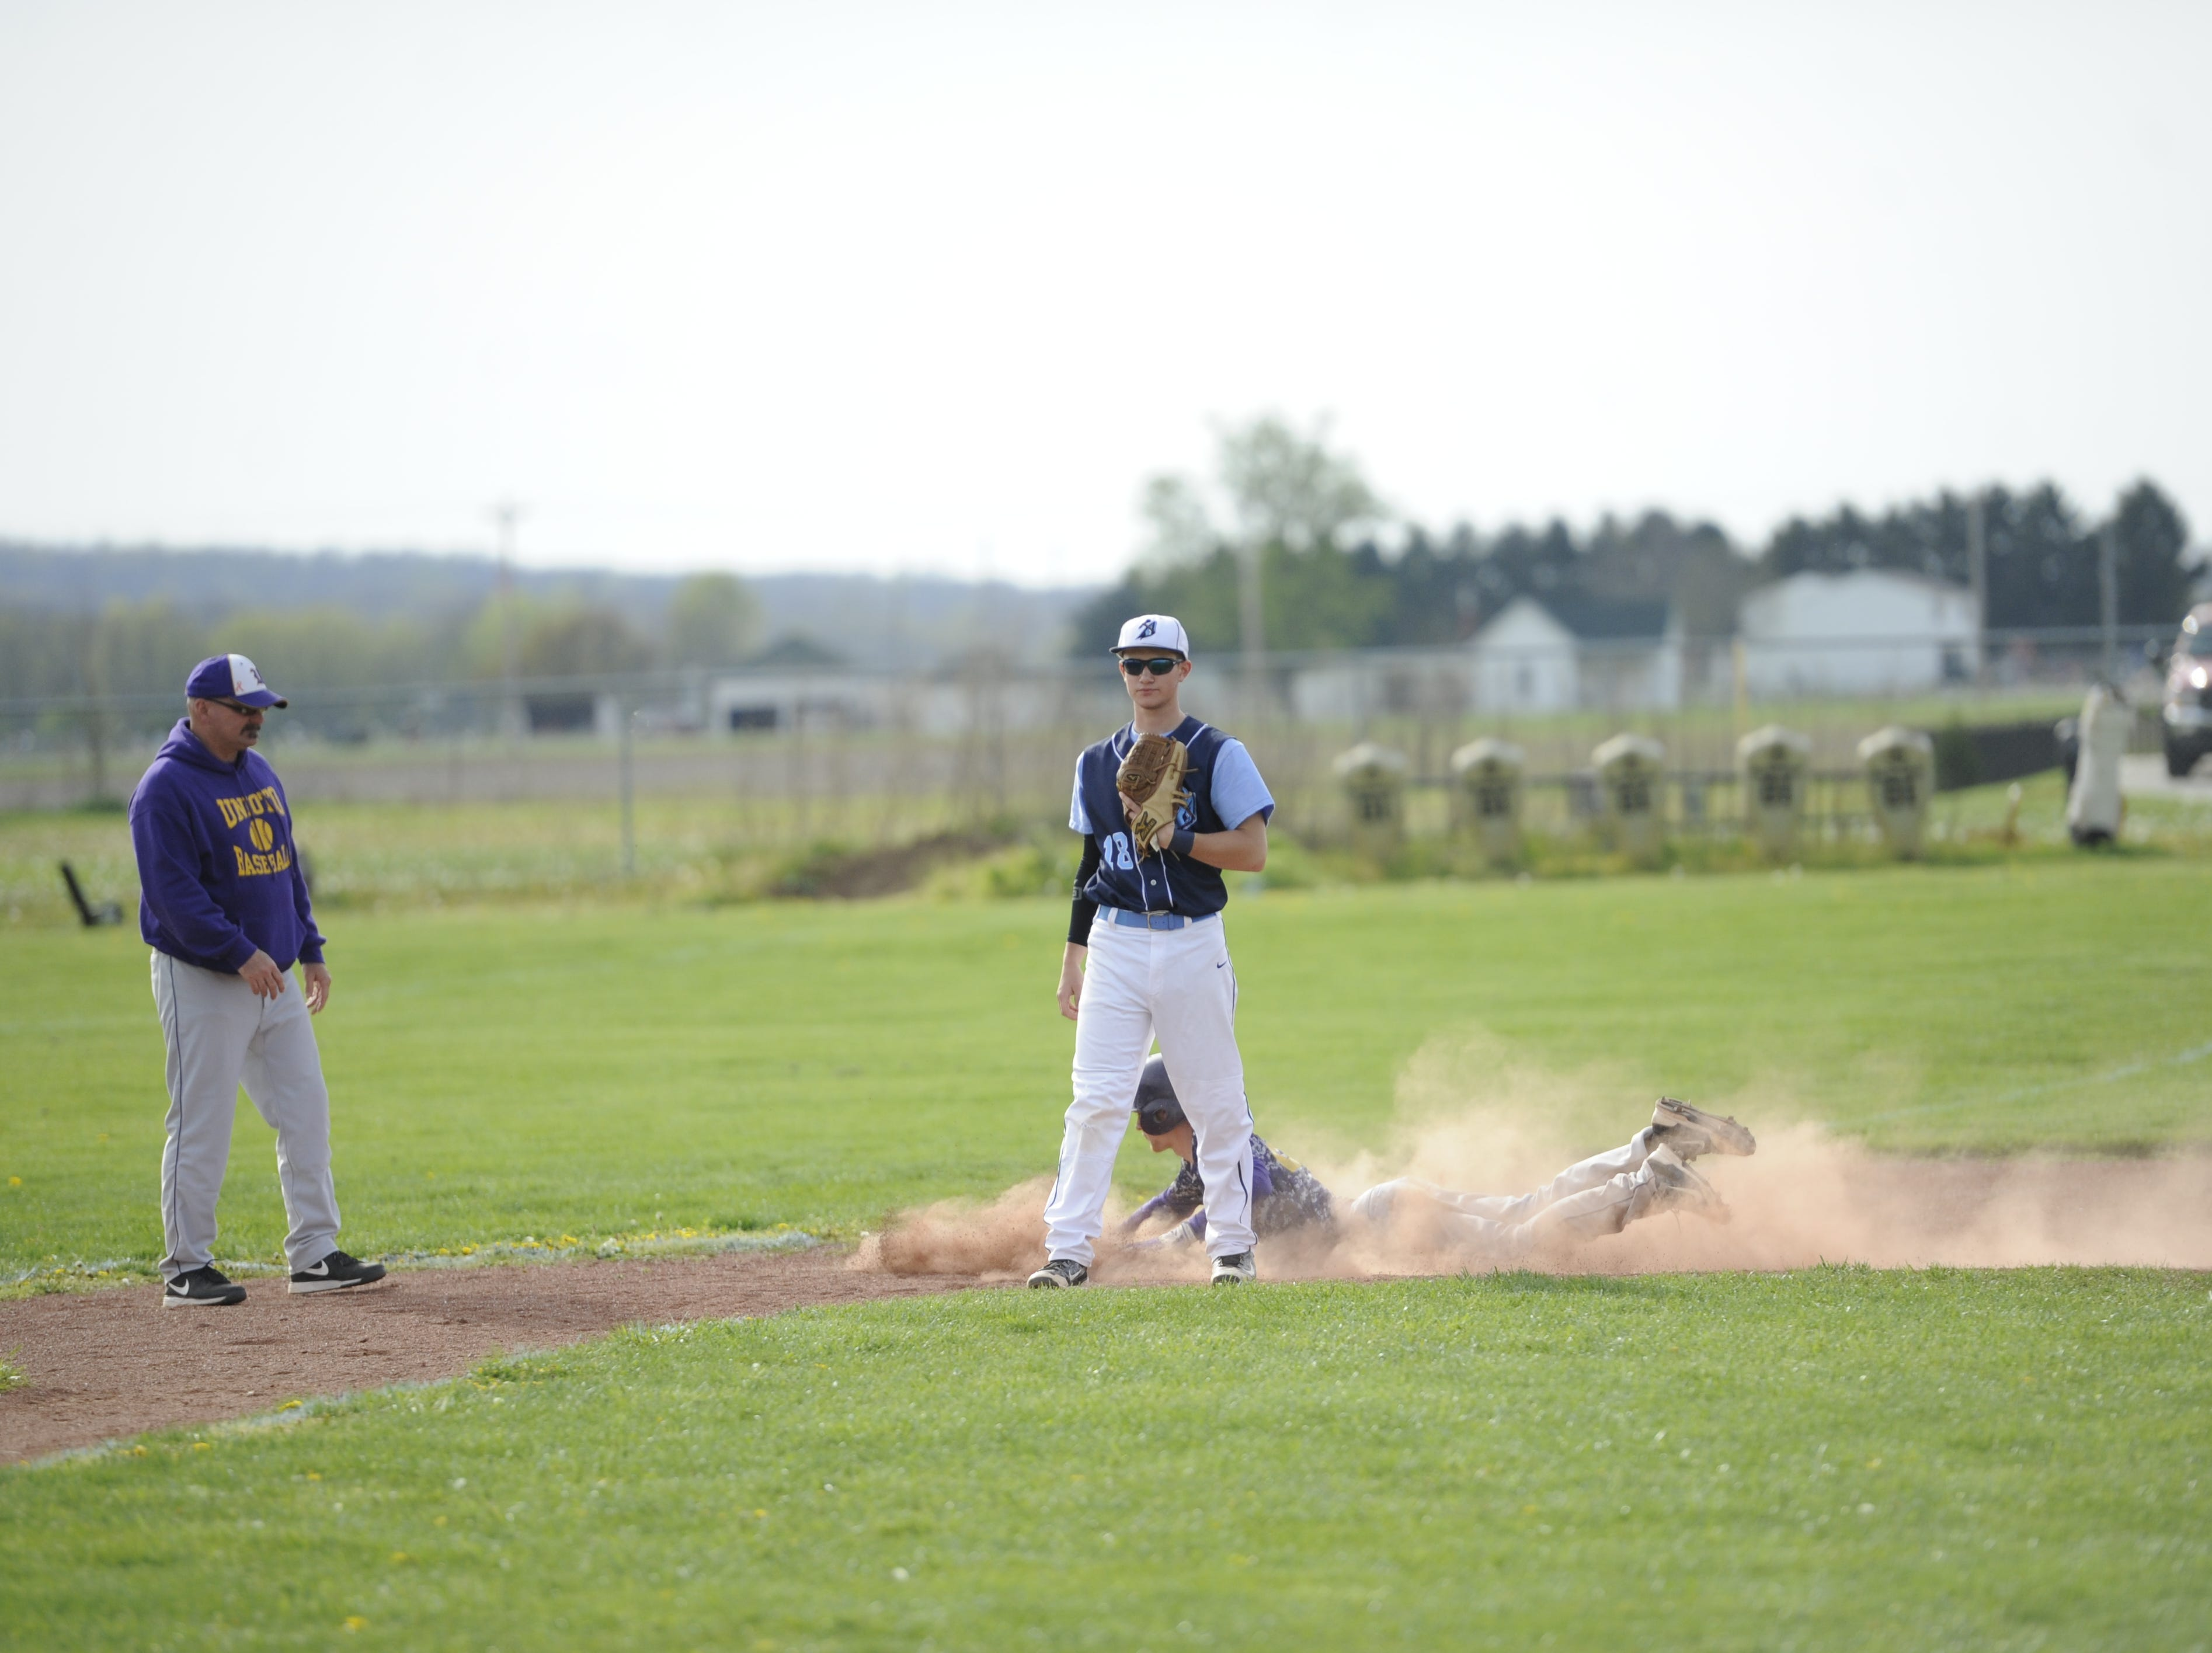 Adena boy's baseball played against Unioto at Adena on Friday. The final score was Adena 10, Unioto 9.